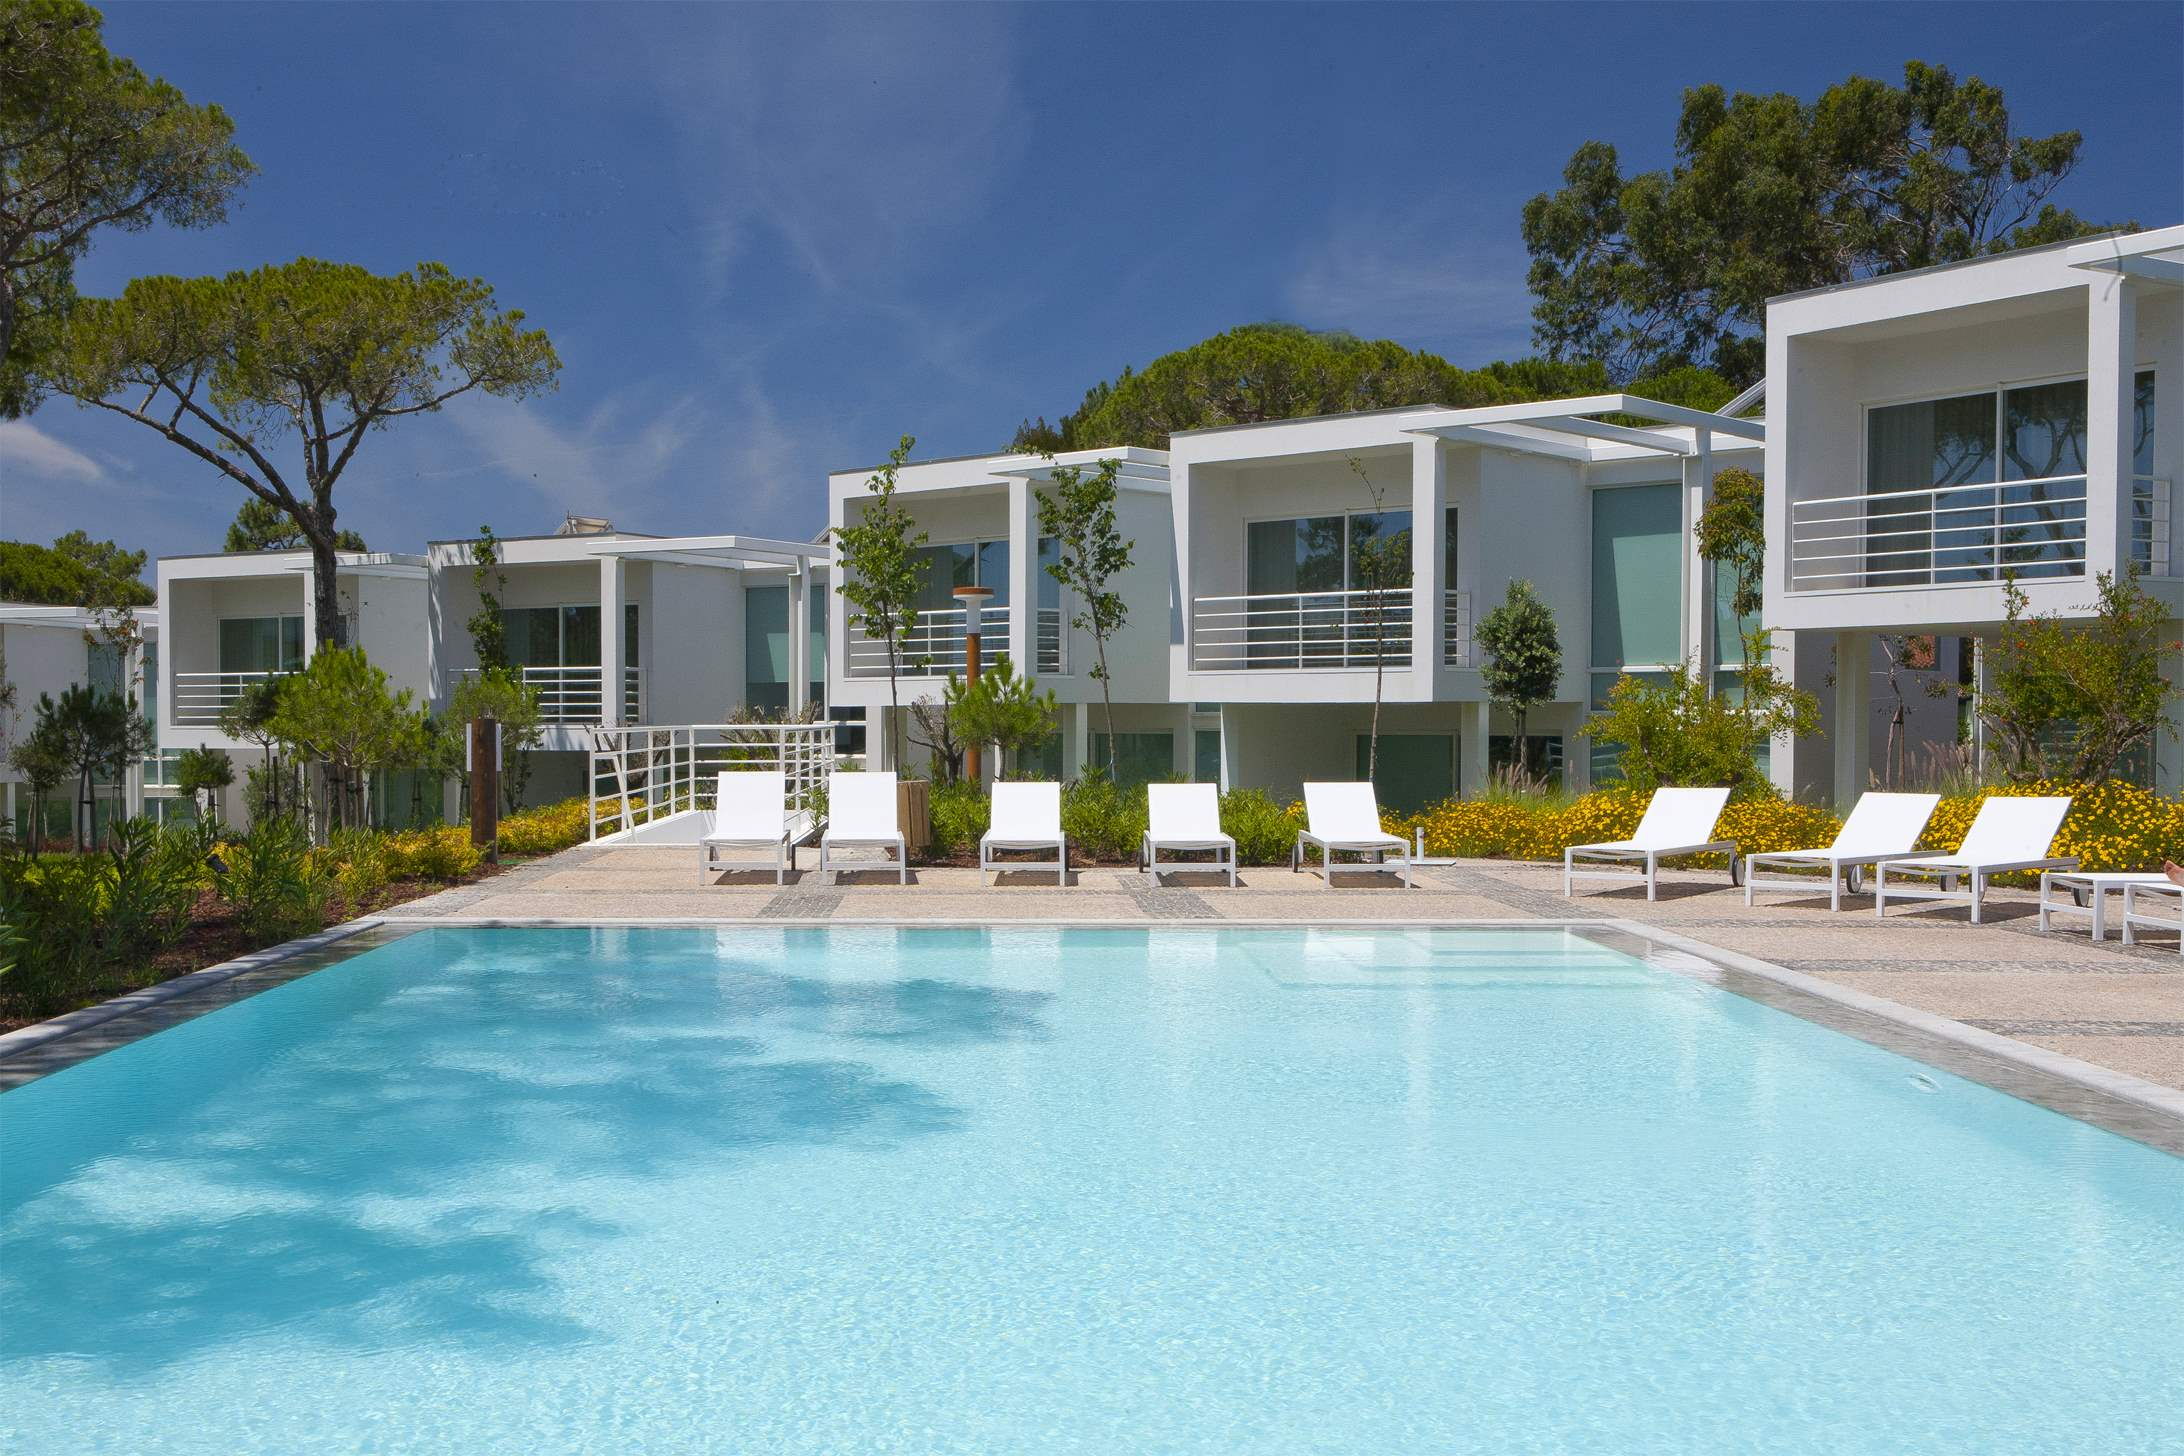 Martinhal Cascais Deluxe Villas, Two Bedroom with Bunk Bed, BB Basis, 2 bedroom villa in Lisbon Coast, Lisbon Photo #1